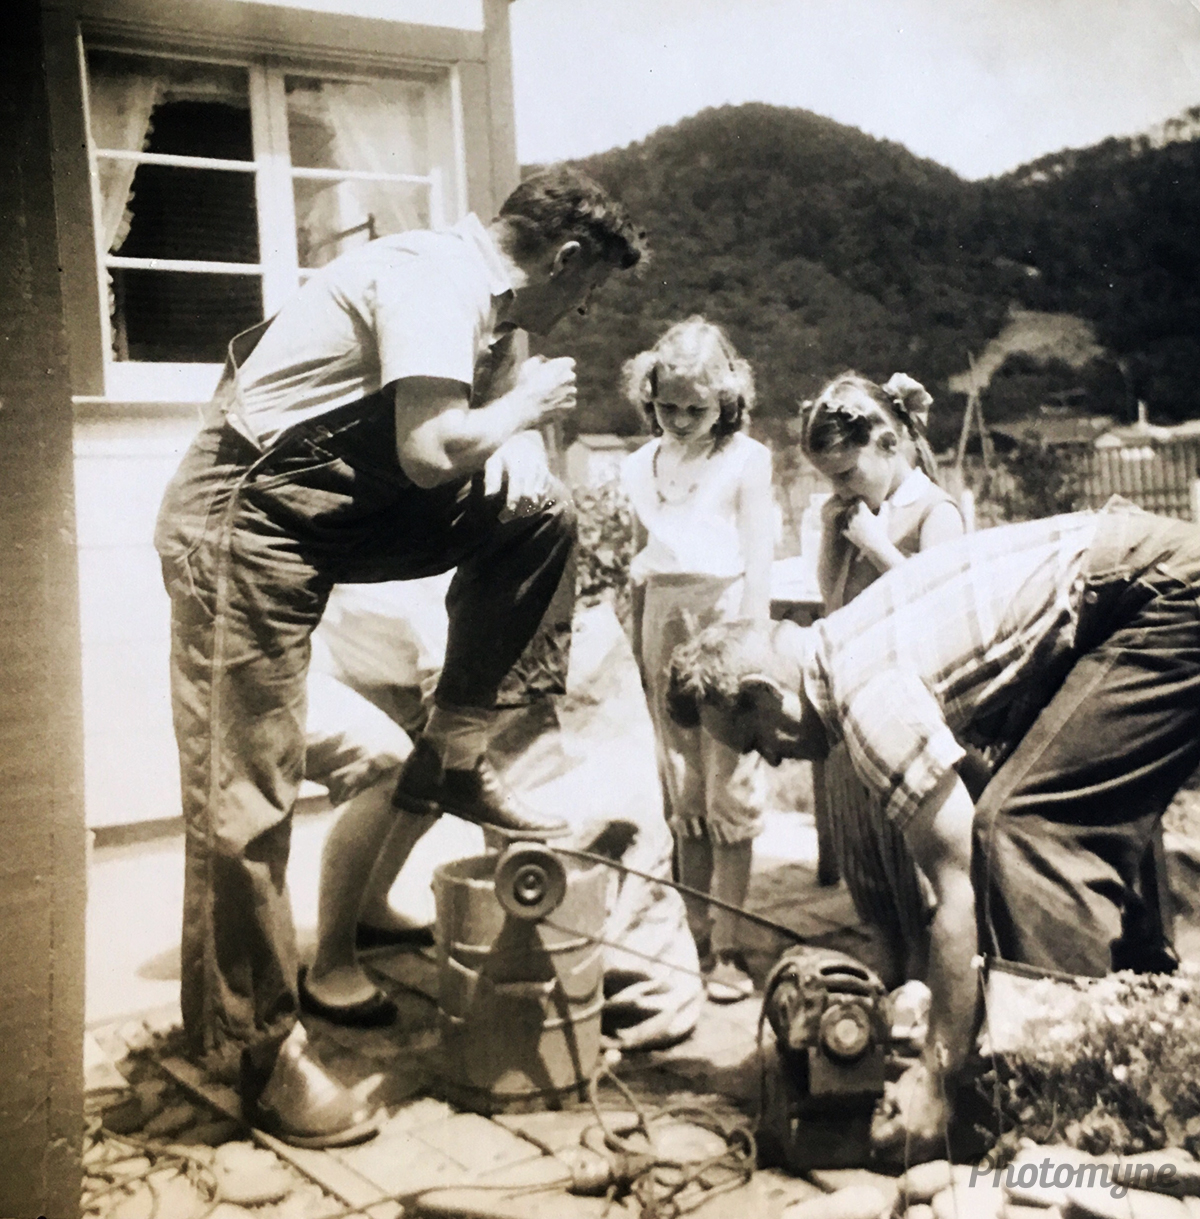 Men ingenuity- an electrician and mechanic solving the problem of how to get home made ice cream without hand churning. Pre electric ice cream makers. My father and his friend. Sister and I supervising. Oregon, USA 1958